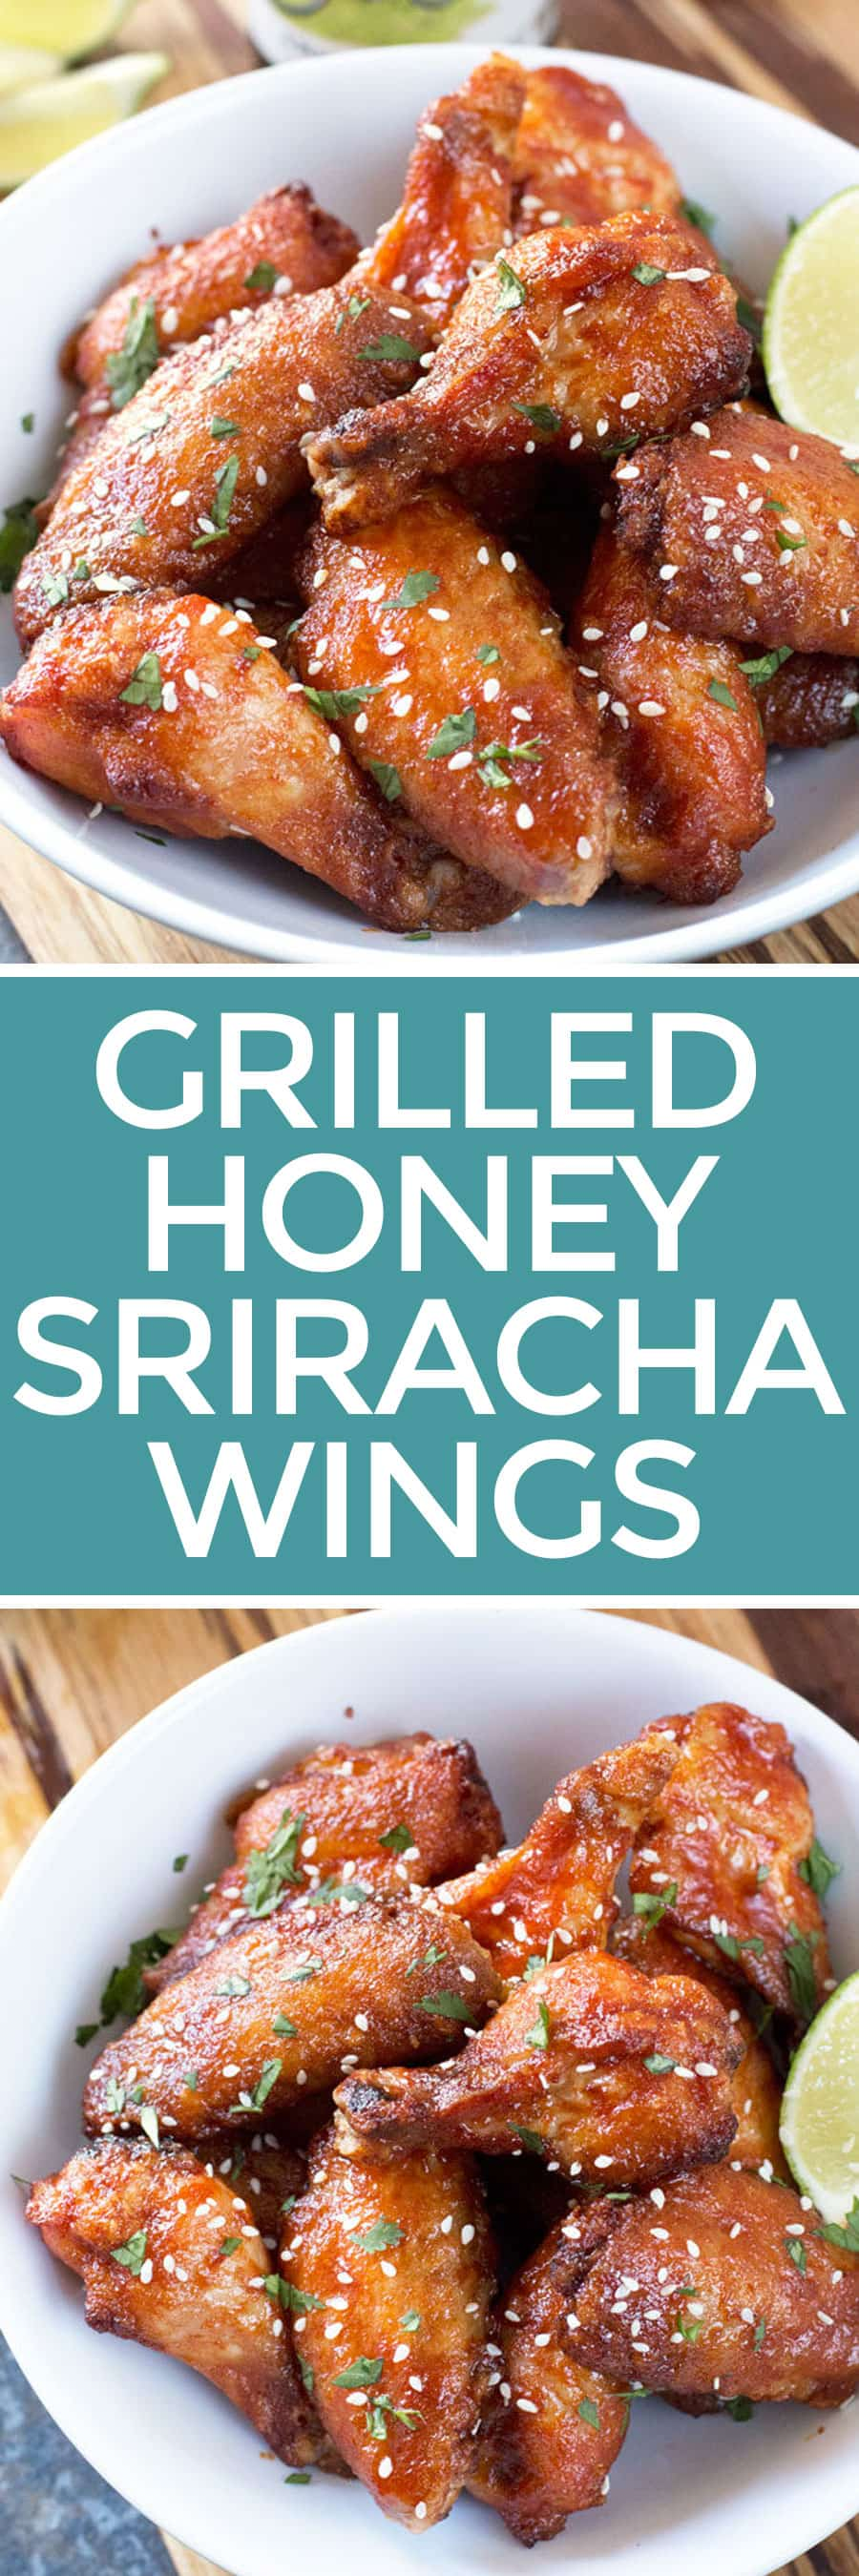 Grilled Honey Sriracha Wings | cakenknife.com